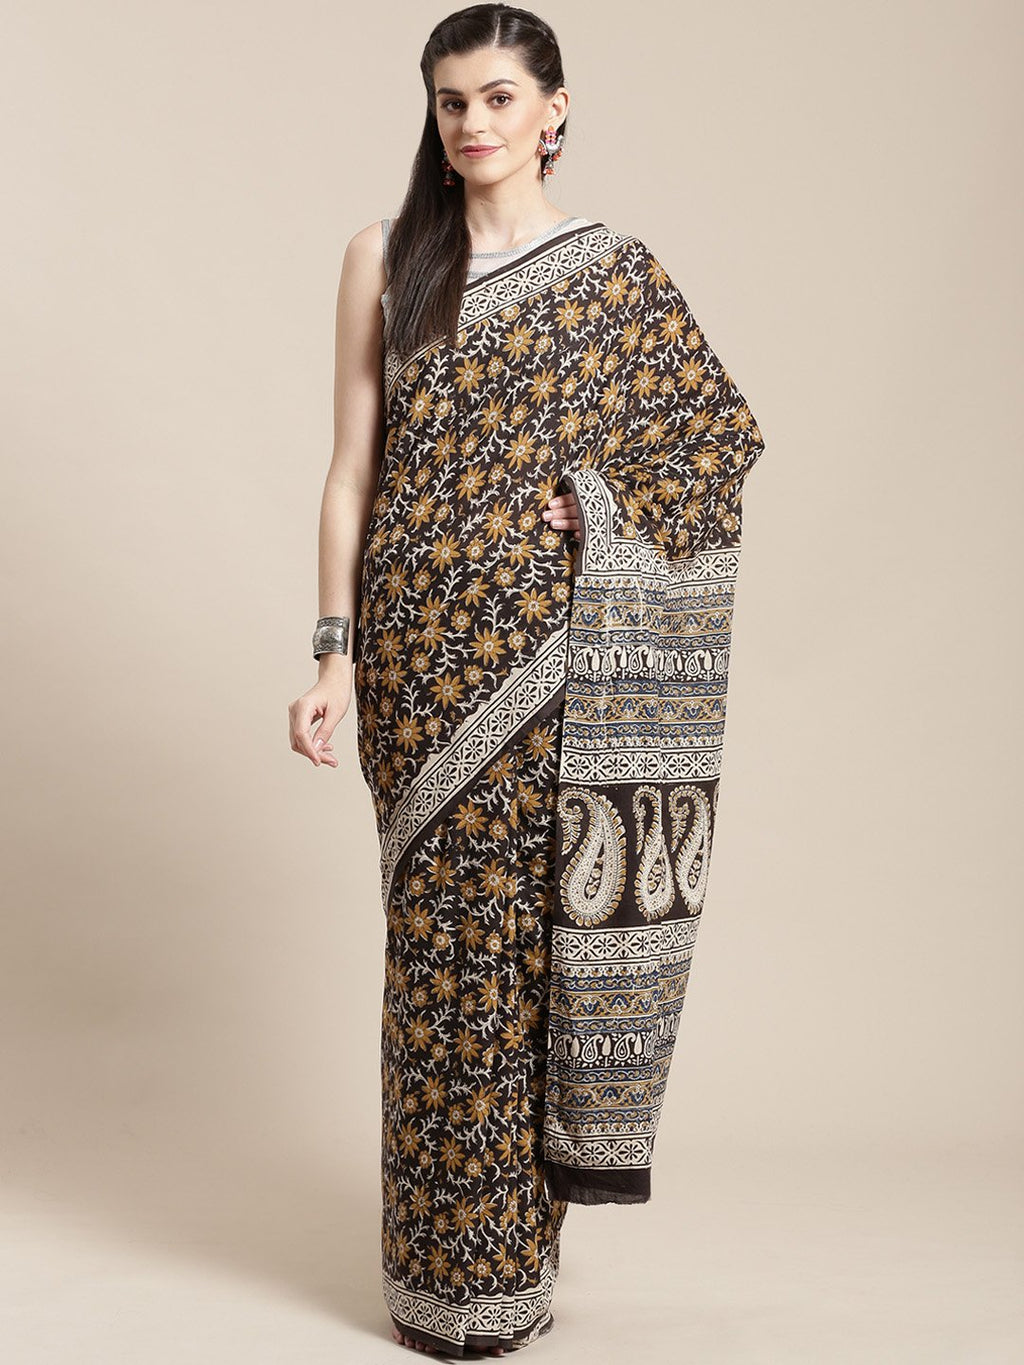 Black & Mustard Yellow Handblock Print Bagru Saree-Saree-Kalakari India-BHKPSA0111-Cotton, Geographical Indication, Hand Blocks, Hand Crafted, Heritage Prints, Sanganeri, Sarees, Sustainable Fabrics-[Linen,Ethnic,wear,Fashionista,Handloom,Handicraft,Indigo,blockprint,block,print,Cotton,Chanderi,Blue, latest,classy,party,bollywood,trendy,summer,style,traditional,formal,elegant,unique,style,hand,block,print, dabu,booti,gift,present,glamorous,affordable,collectible,Sari,Saree,printed, holi, Diwali,